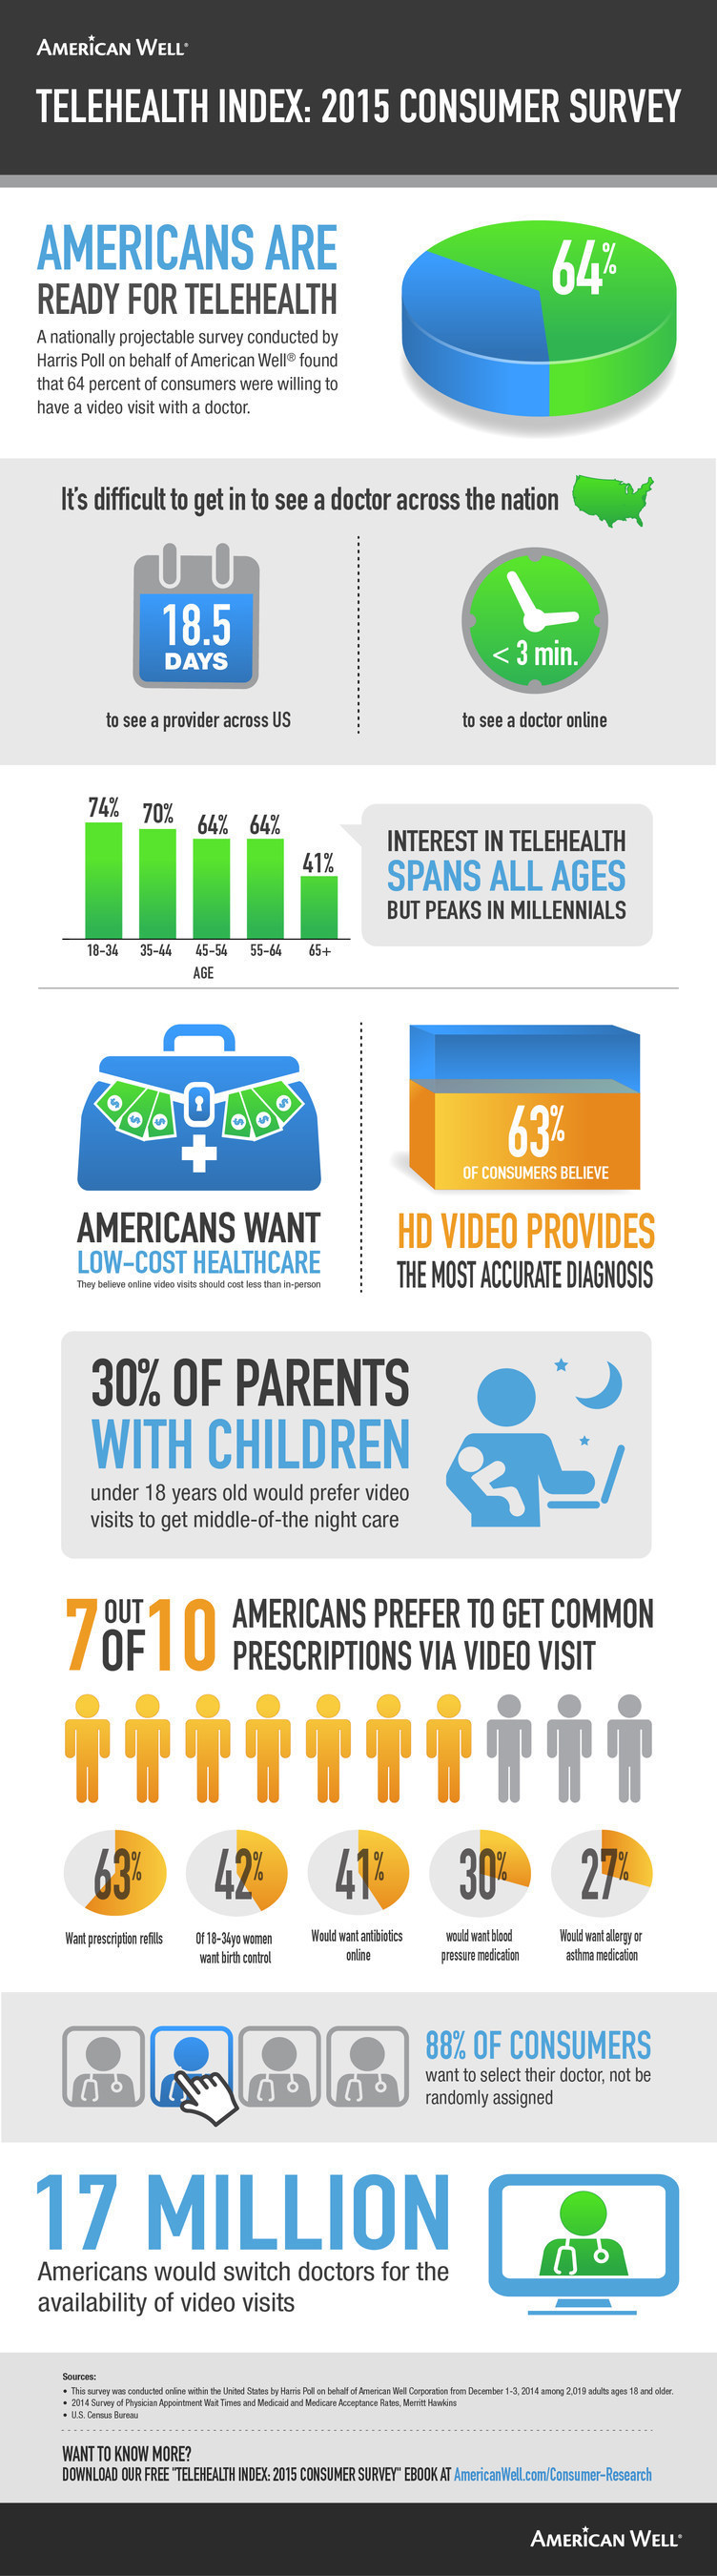 A Harris Poll conducted by telehealth leader American Well finds that the majority of Americans are ready for telehealth